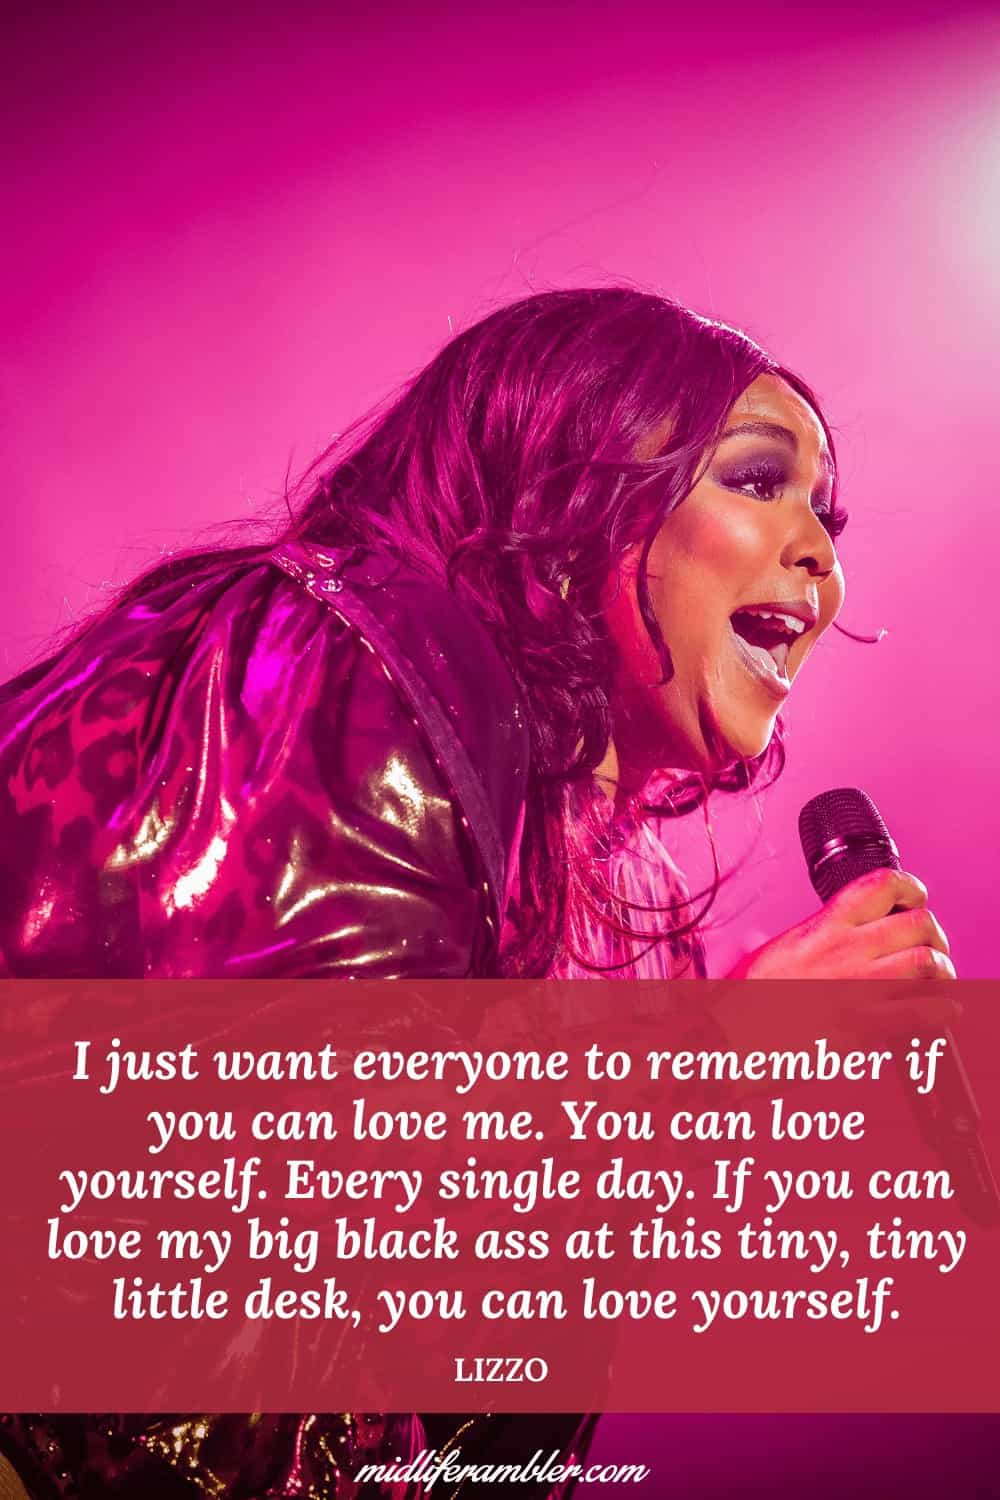 50 Self-Compassion Quotes and Affirmations to Help You Learn to Love and Accept Yourself - I just want everyone to remember if you can love me. You can love yourself. Every single day. If you can love my big black ass at this tiny, tiny little desk, you can love yourself. – Lizzo